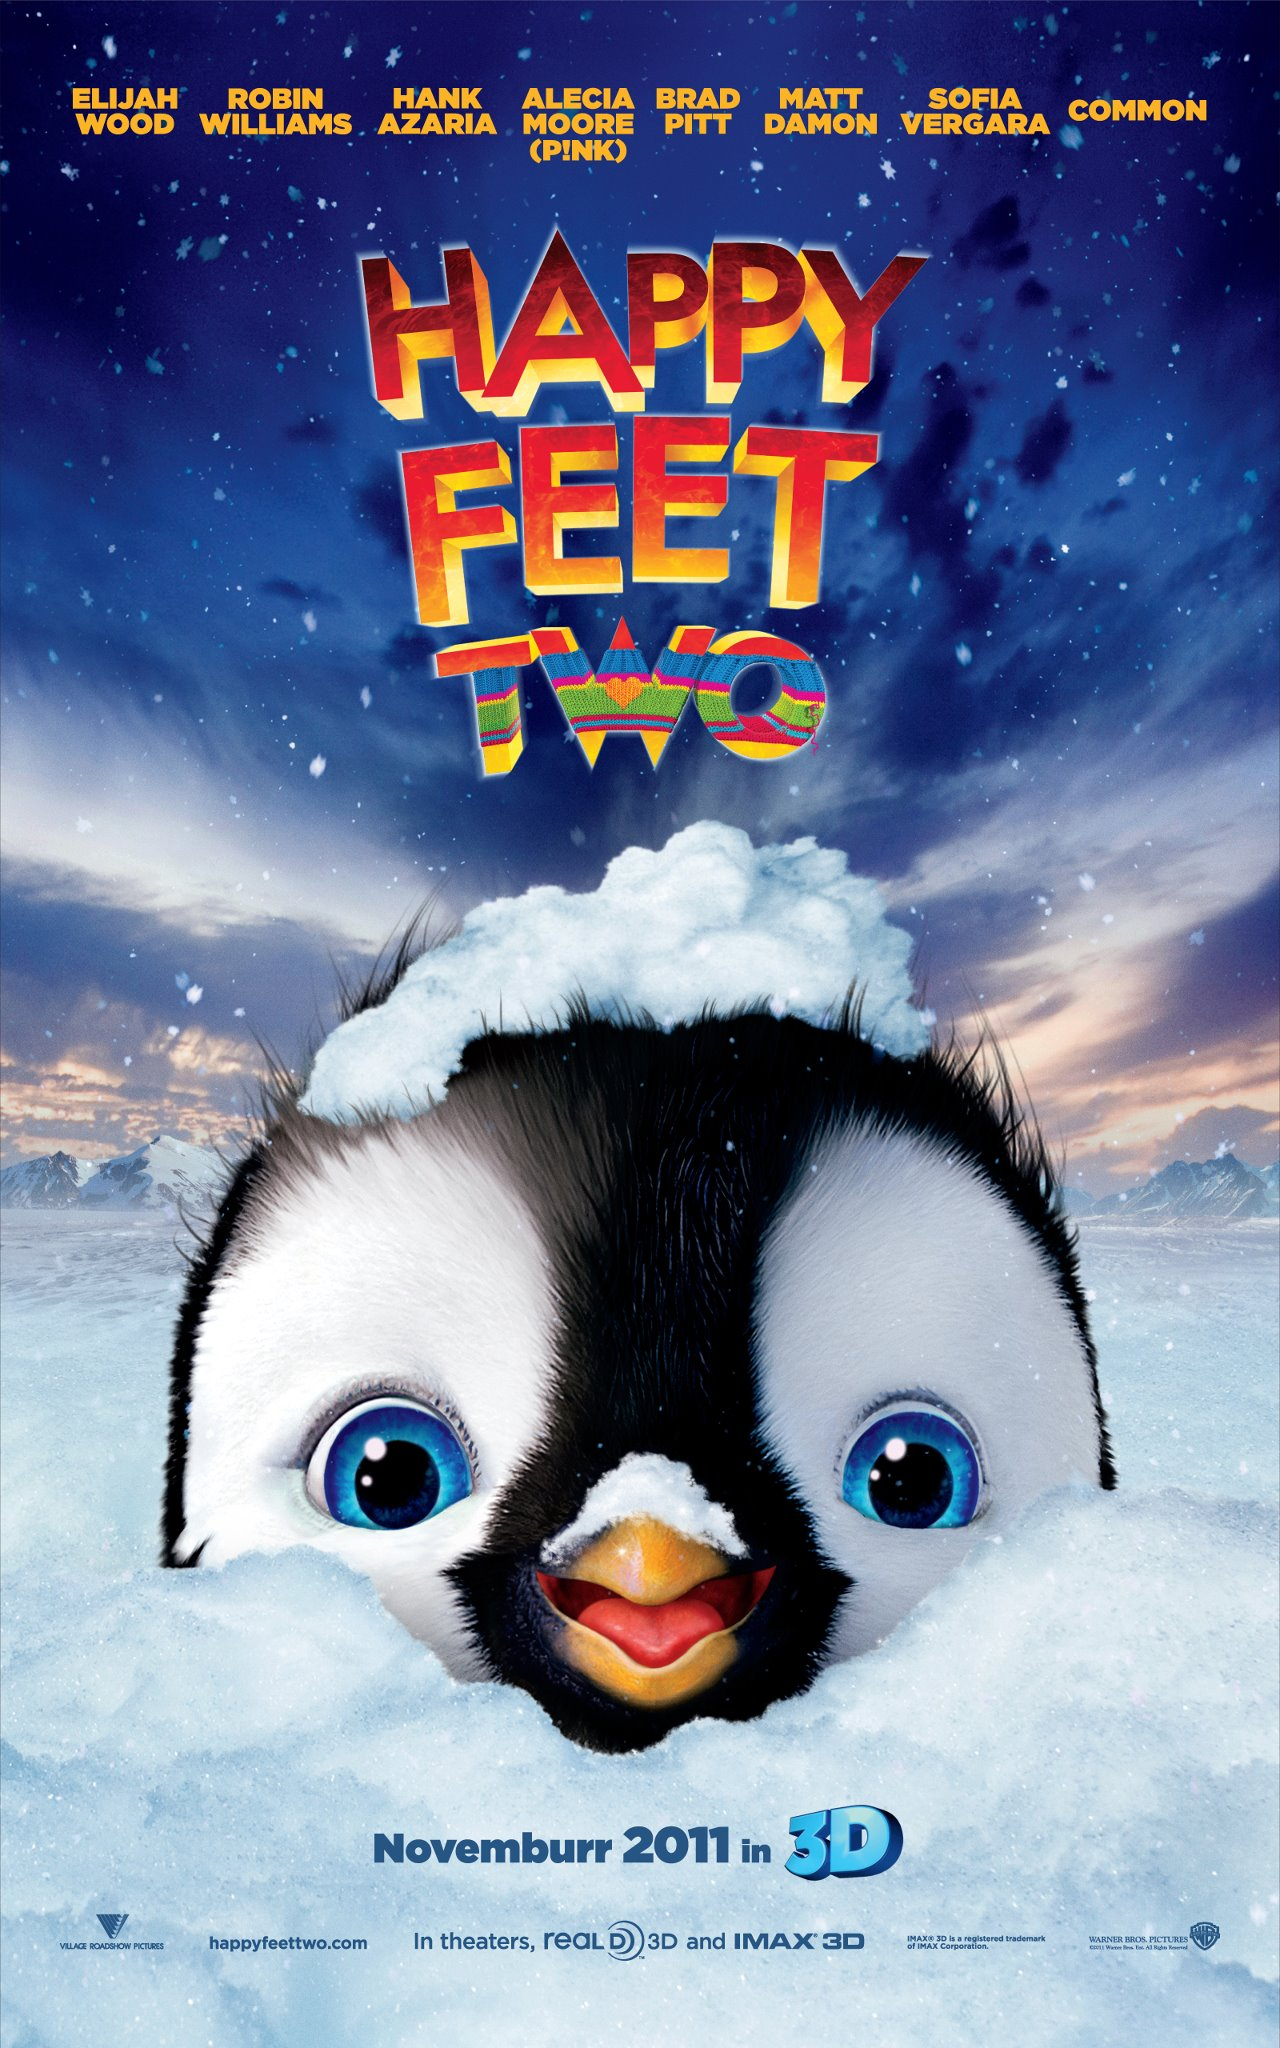 happy feet 2 images the second happy feet 2 poster hd wallpaper and